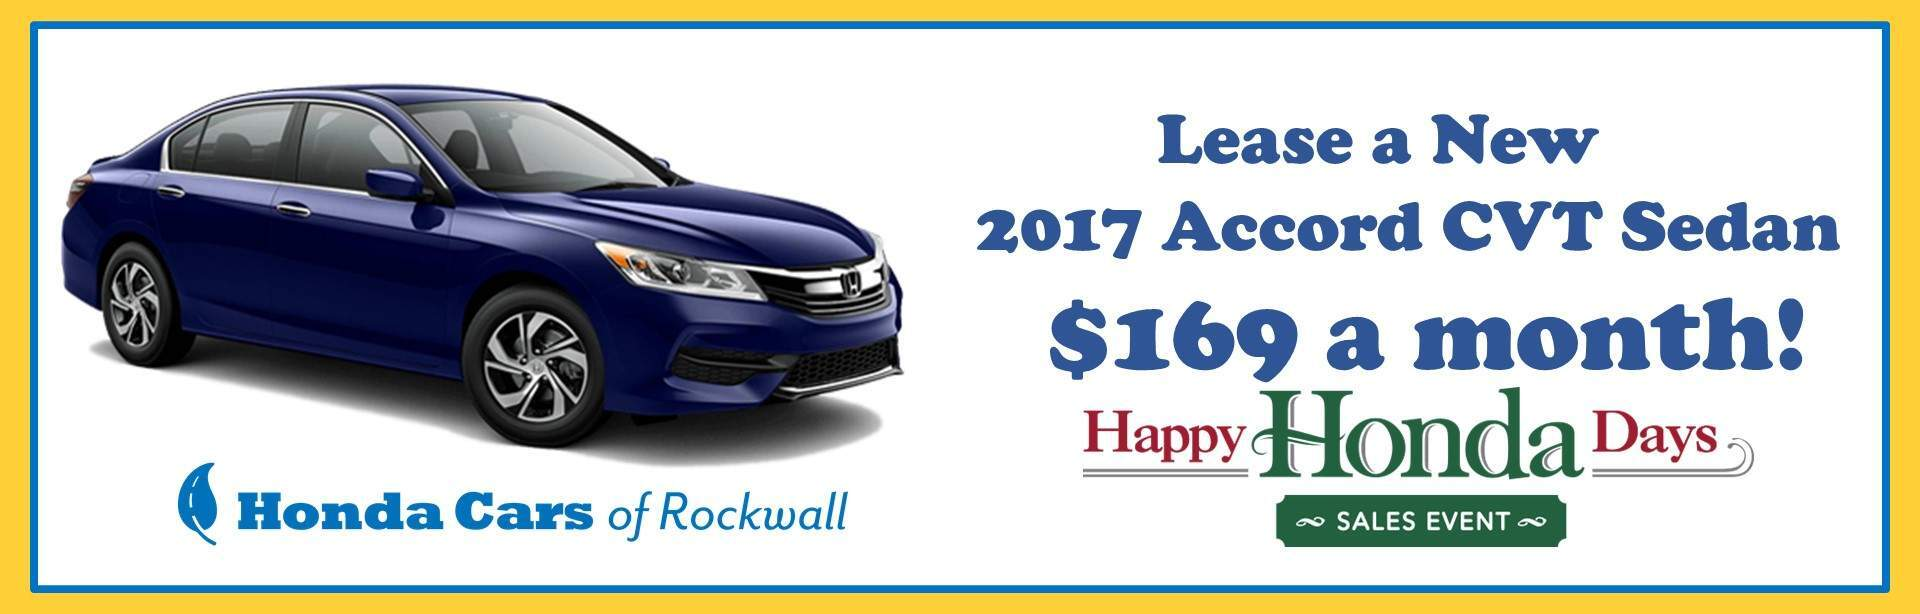 HHD Accord Lease